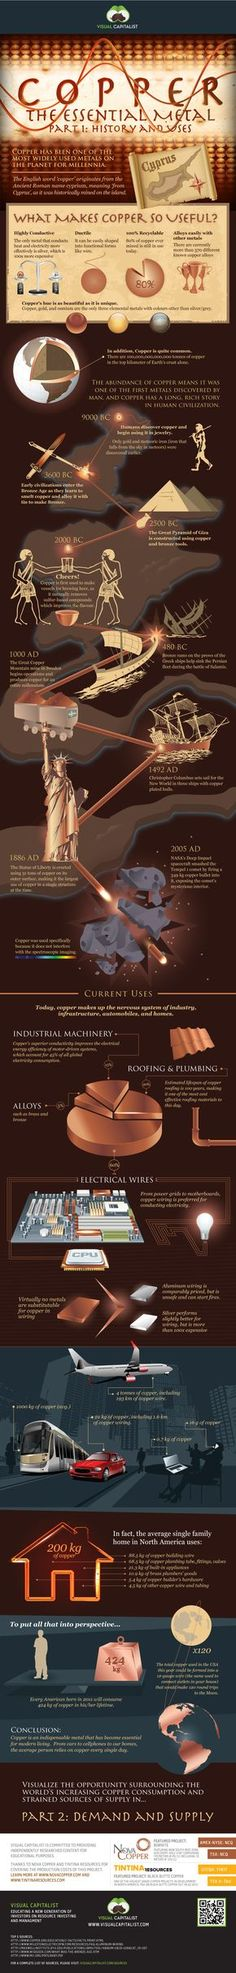 Copper: The Essential Metal